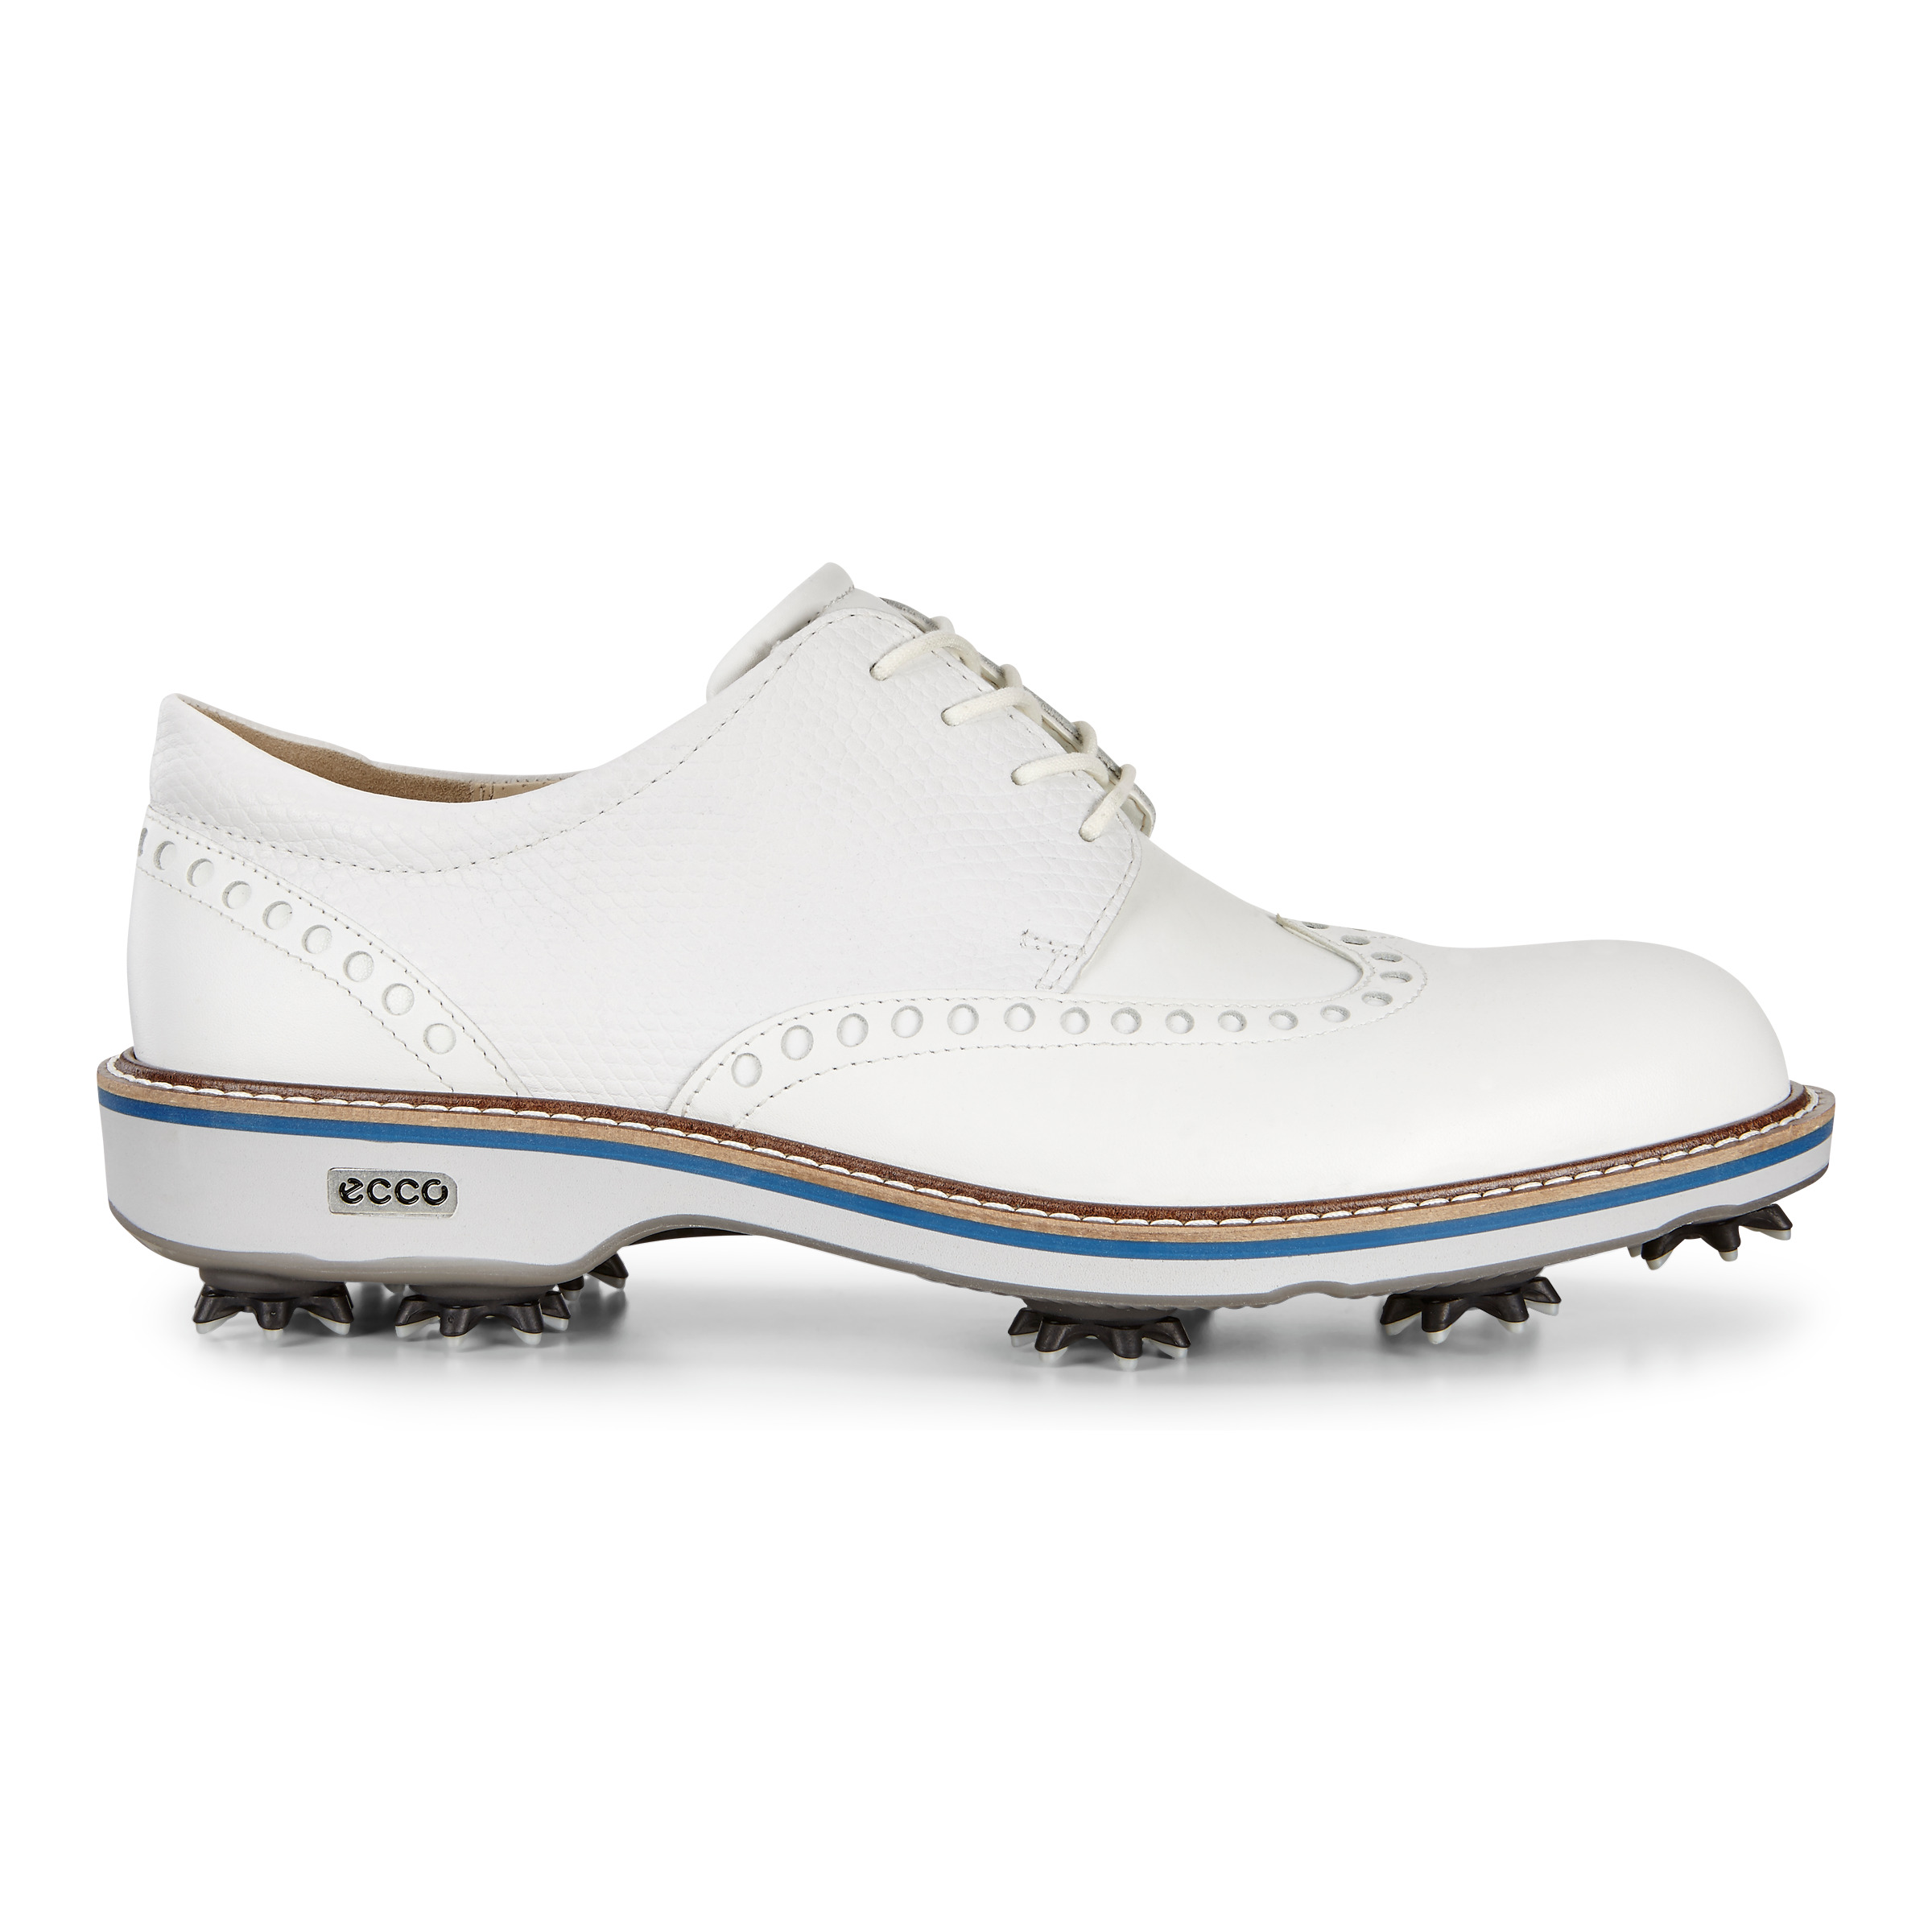 Image of ECCO Mens Golf Lux